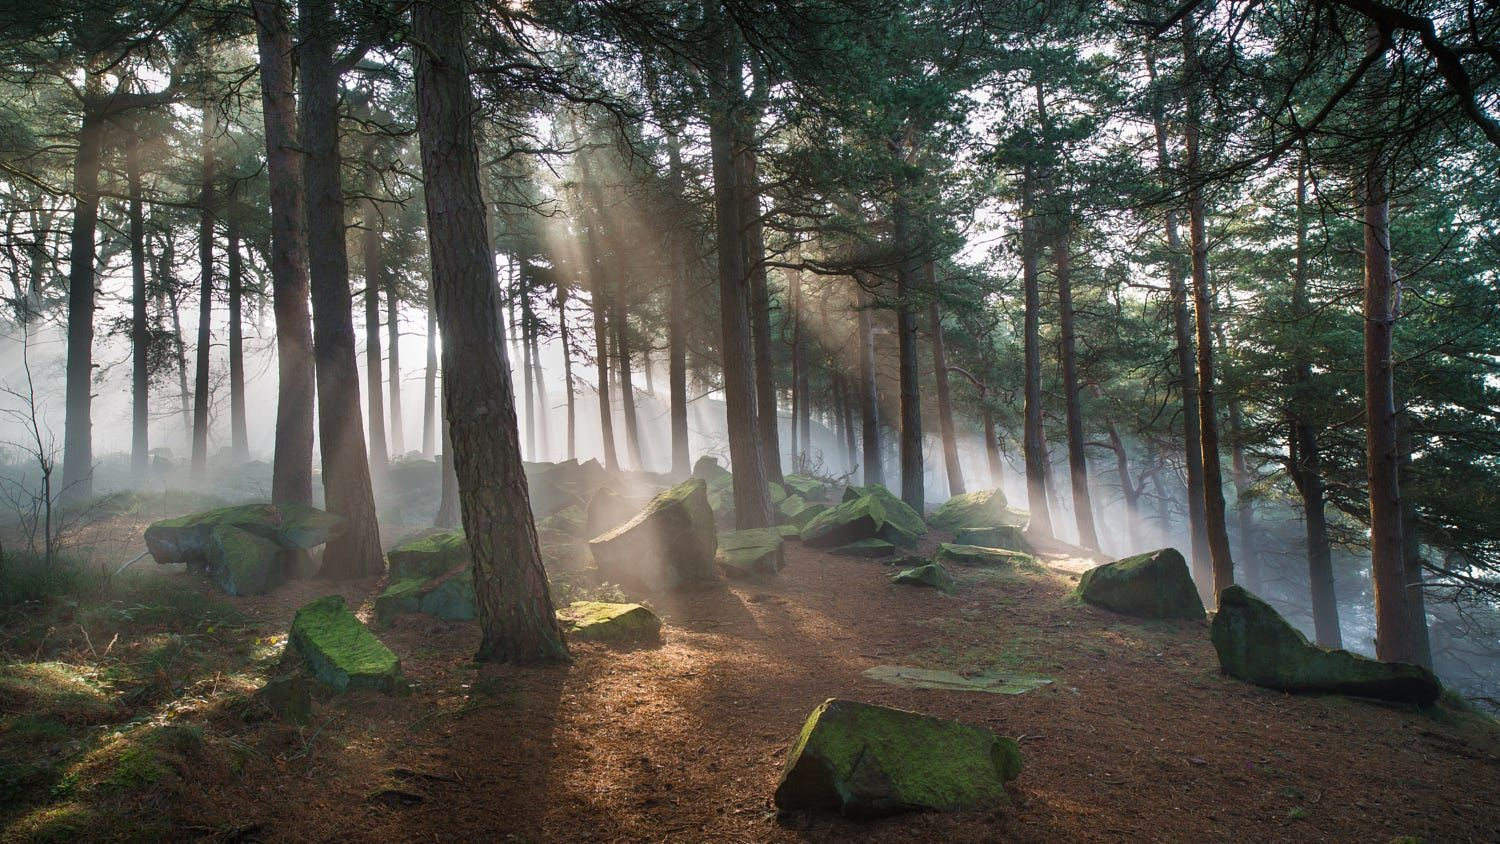 Pinewoods Mist by James Mills on 500px